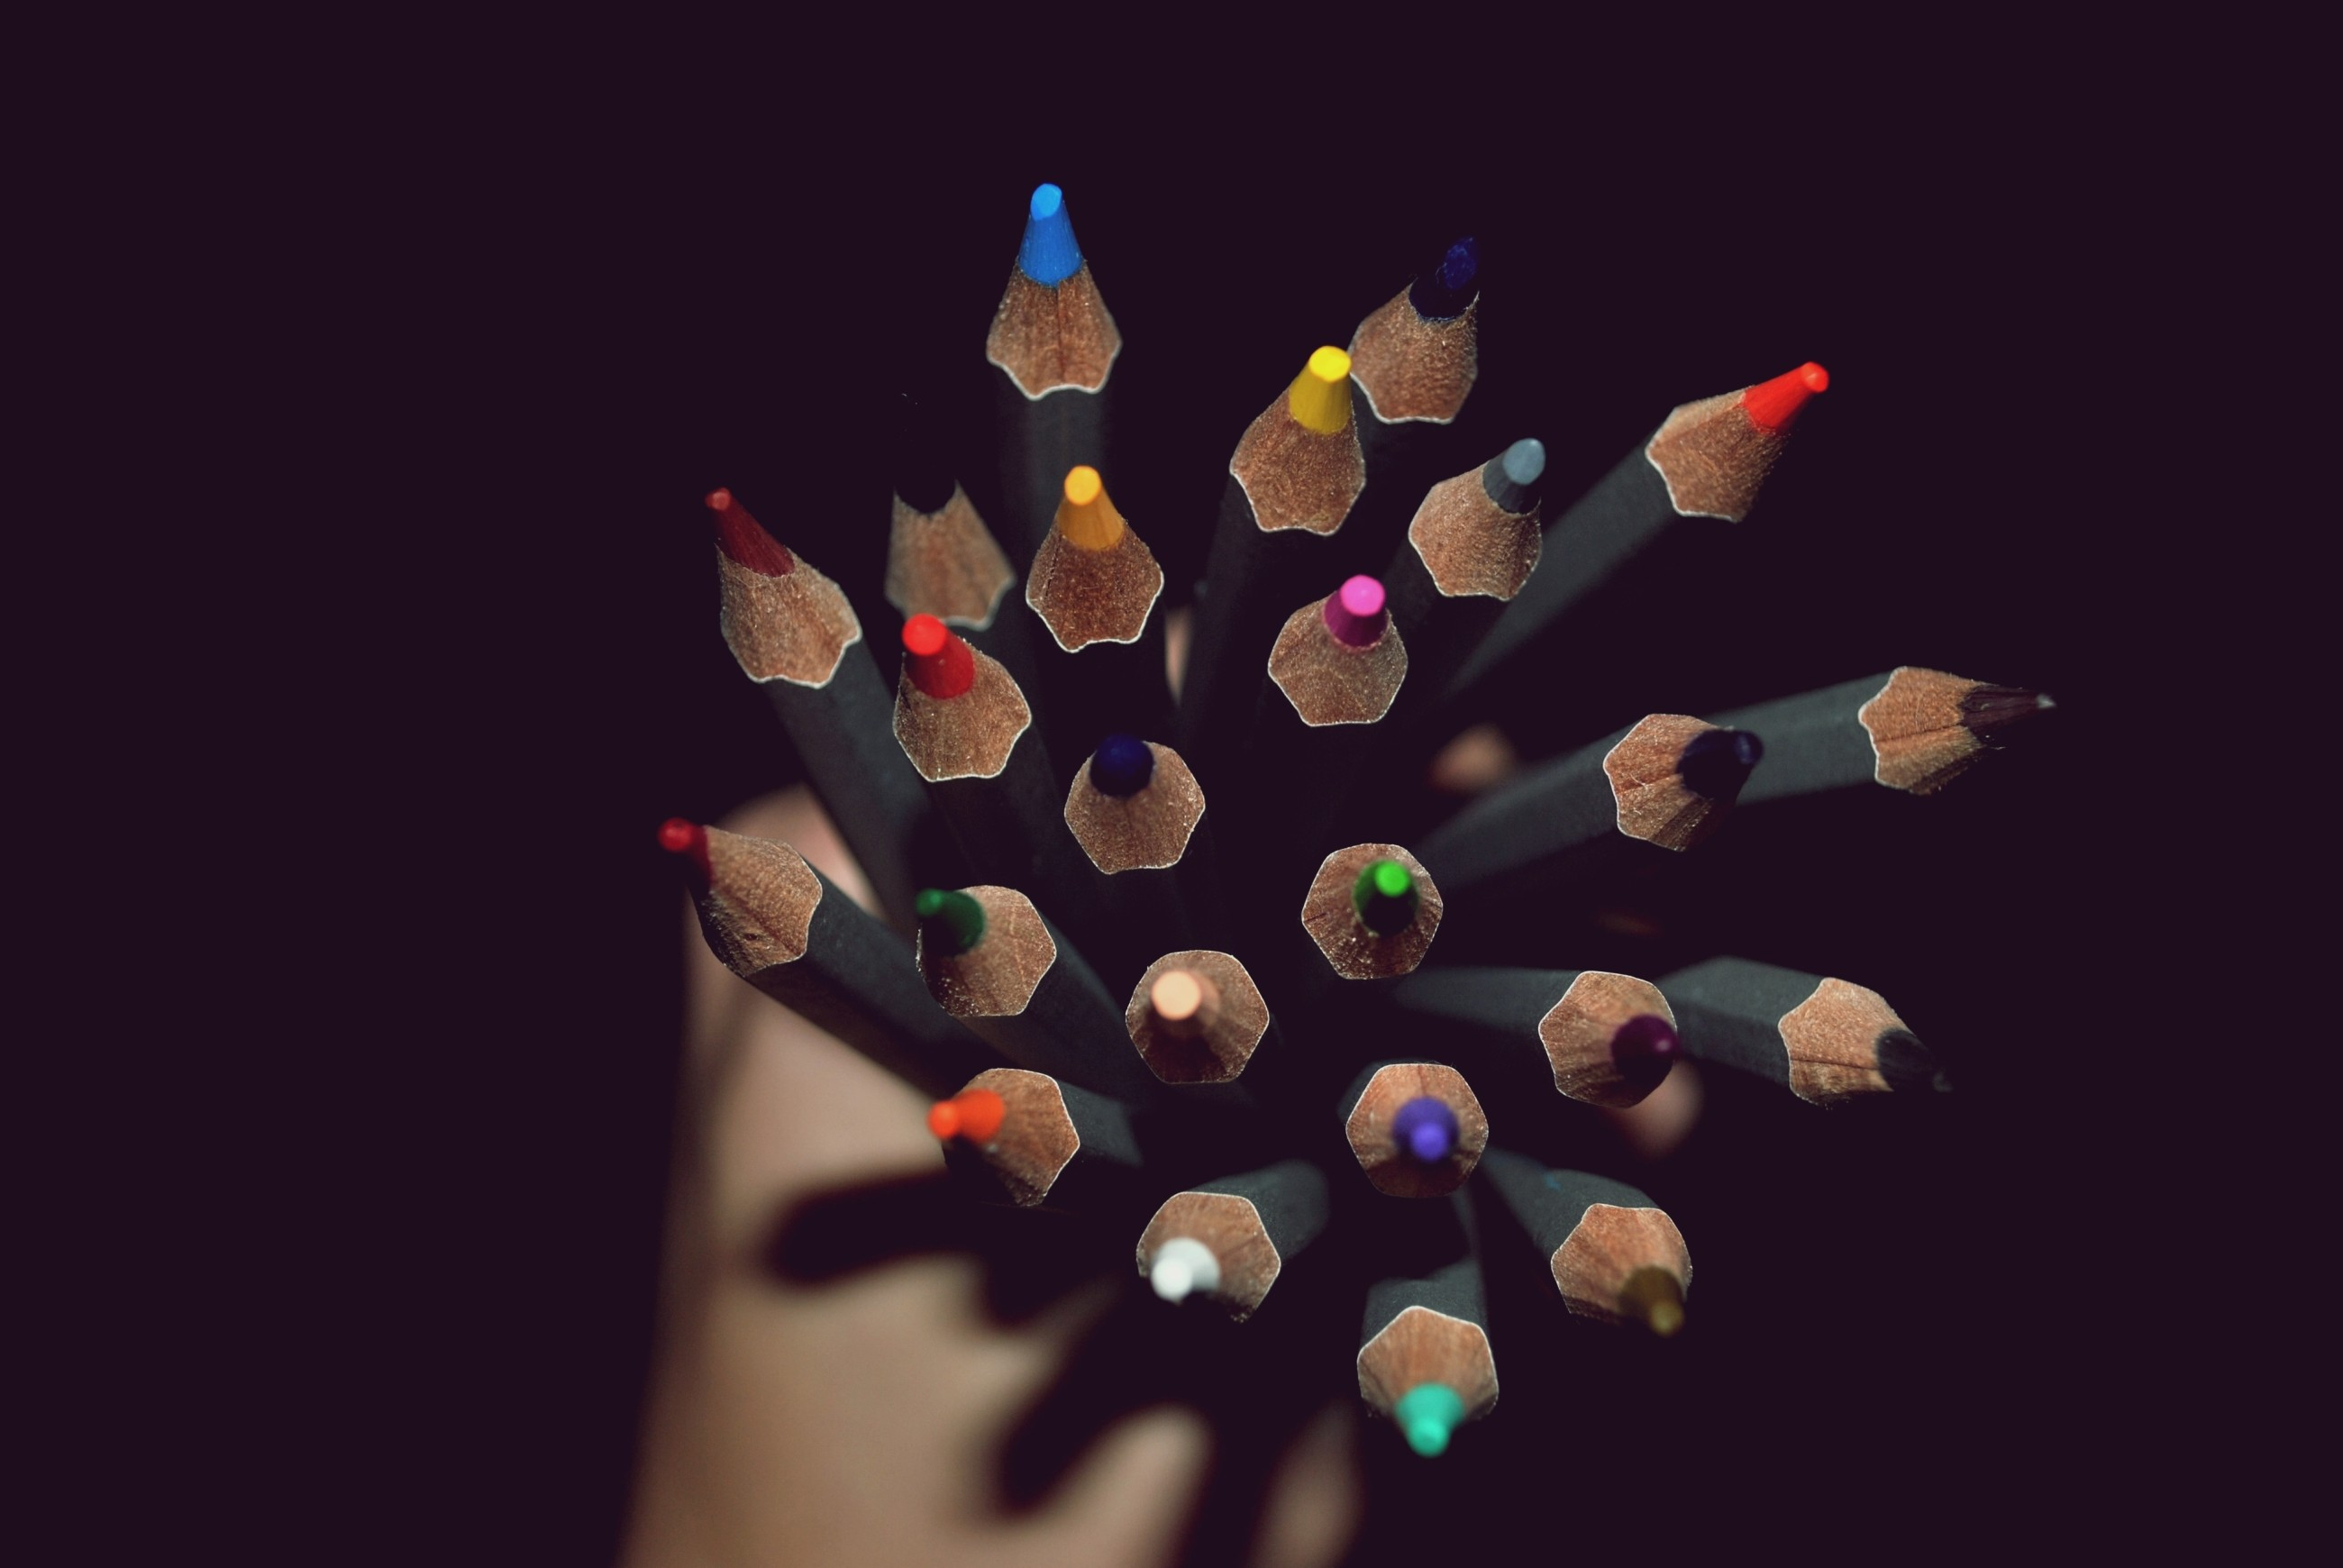 149230 download wallpaper Hand, Miscellanea, Miscellaneous, Shadow, Colored Pencils, Colour Pencils screensavers and pictures for free